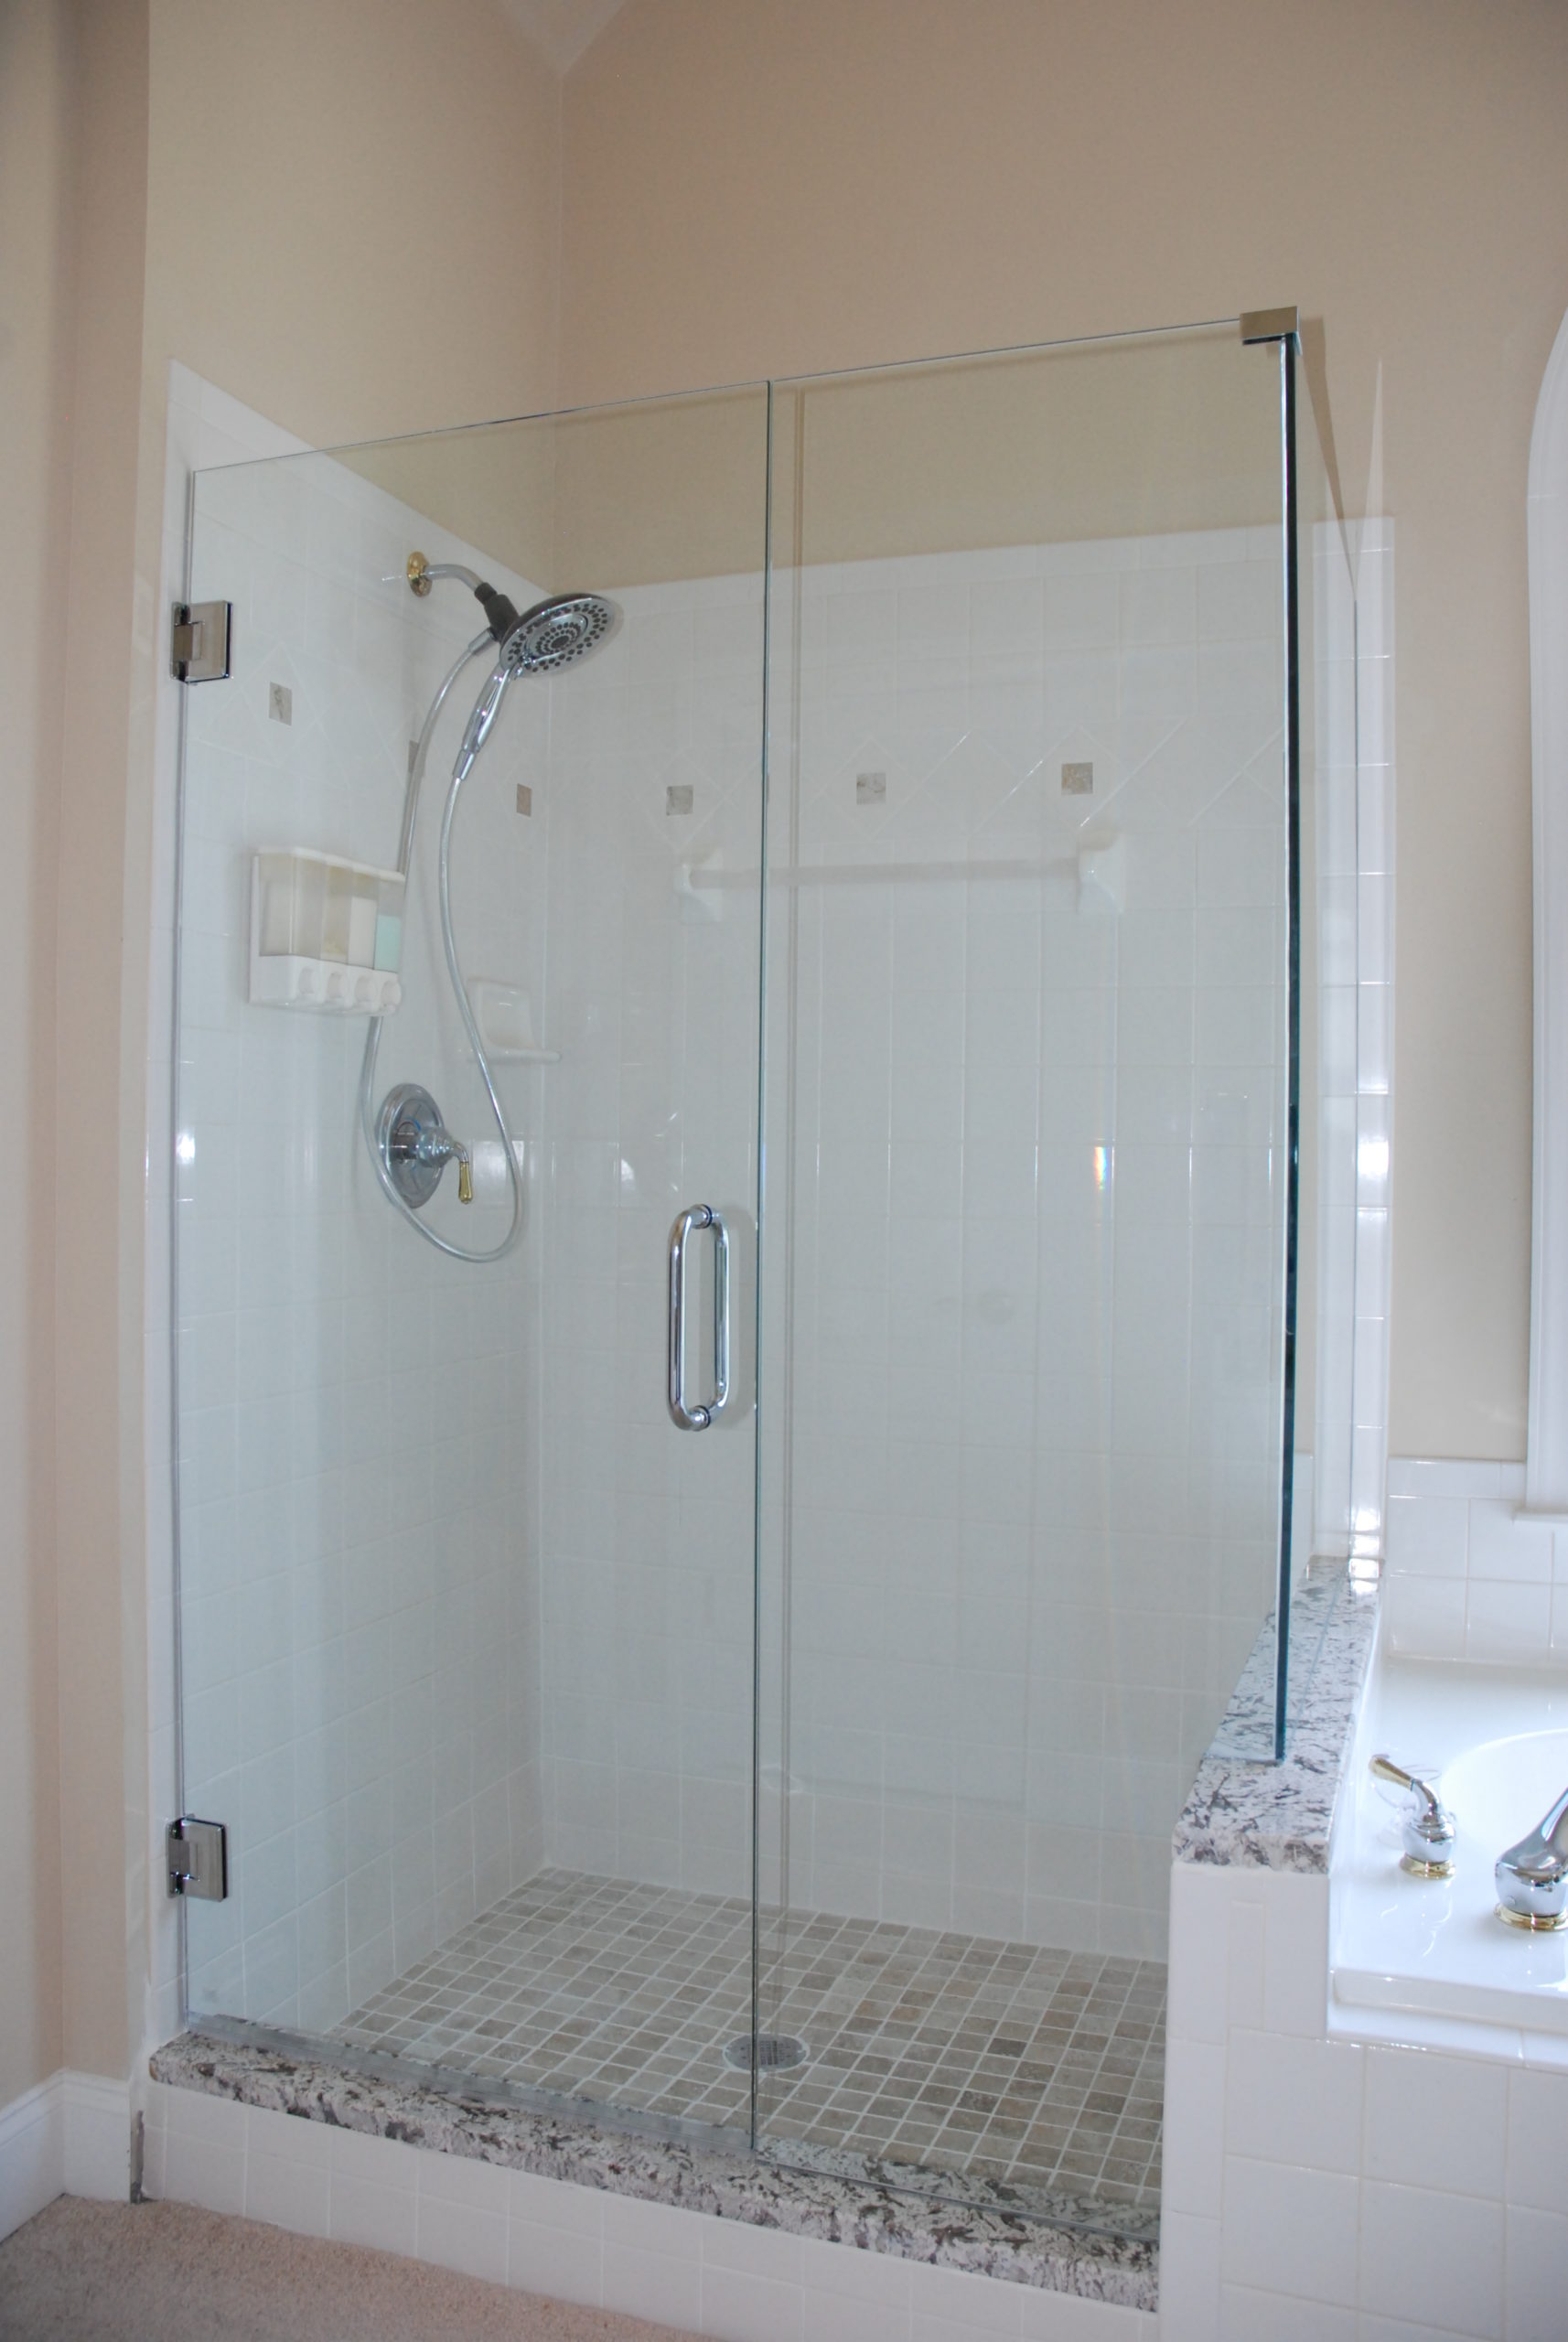 Top tips on whether to pick a bath or shower for the new for Bathroom remodel lancaster pa